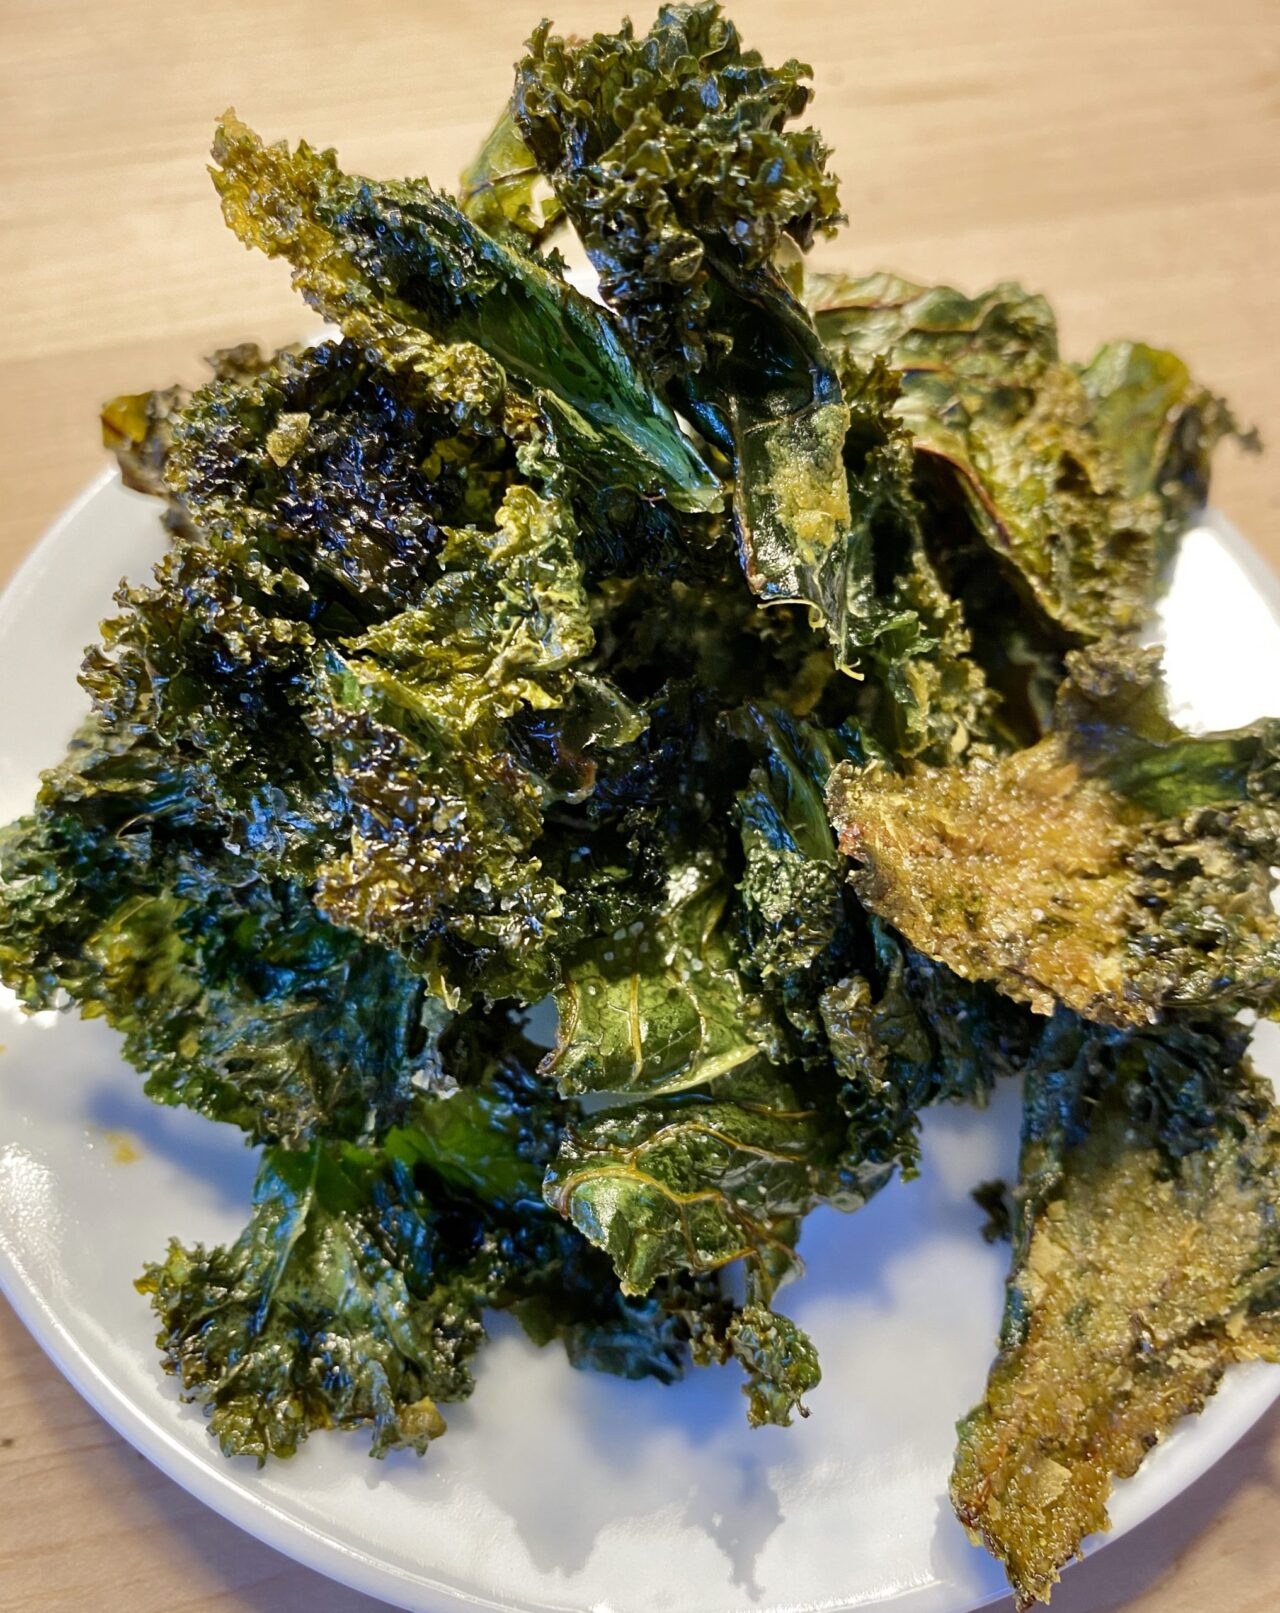 Not-for-Date-Night Easy Kale Chips